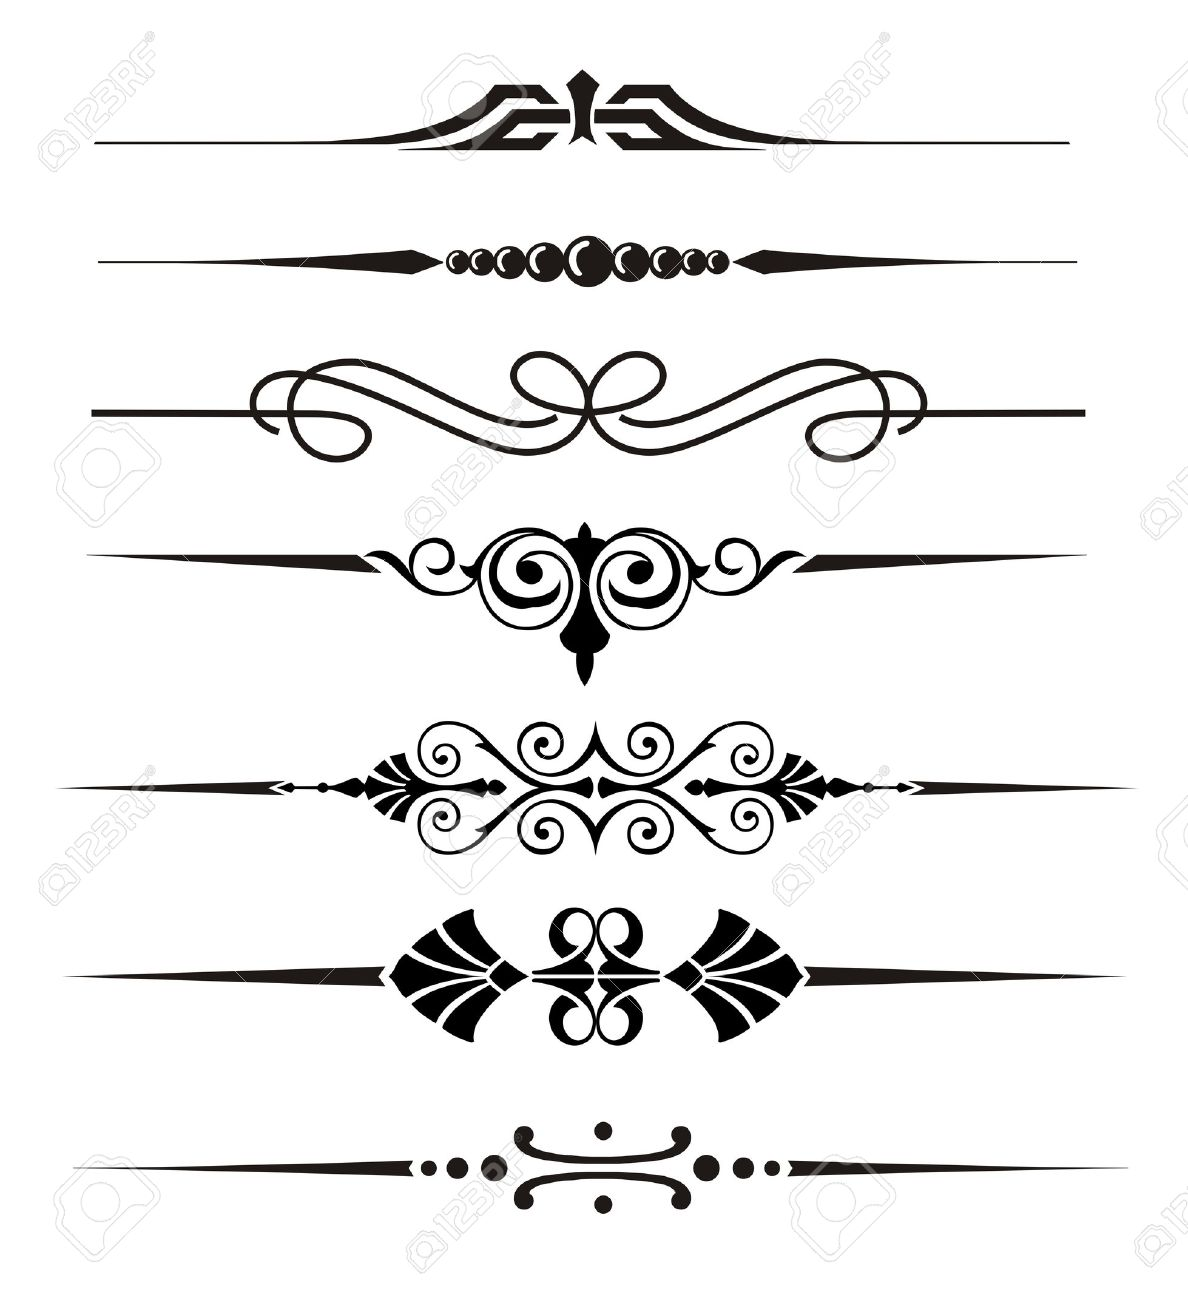 vecter divider ornaments and graphical elements royalty free